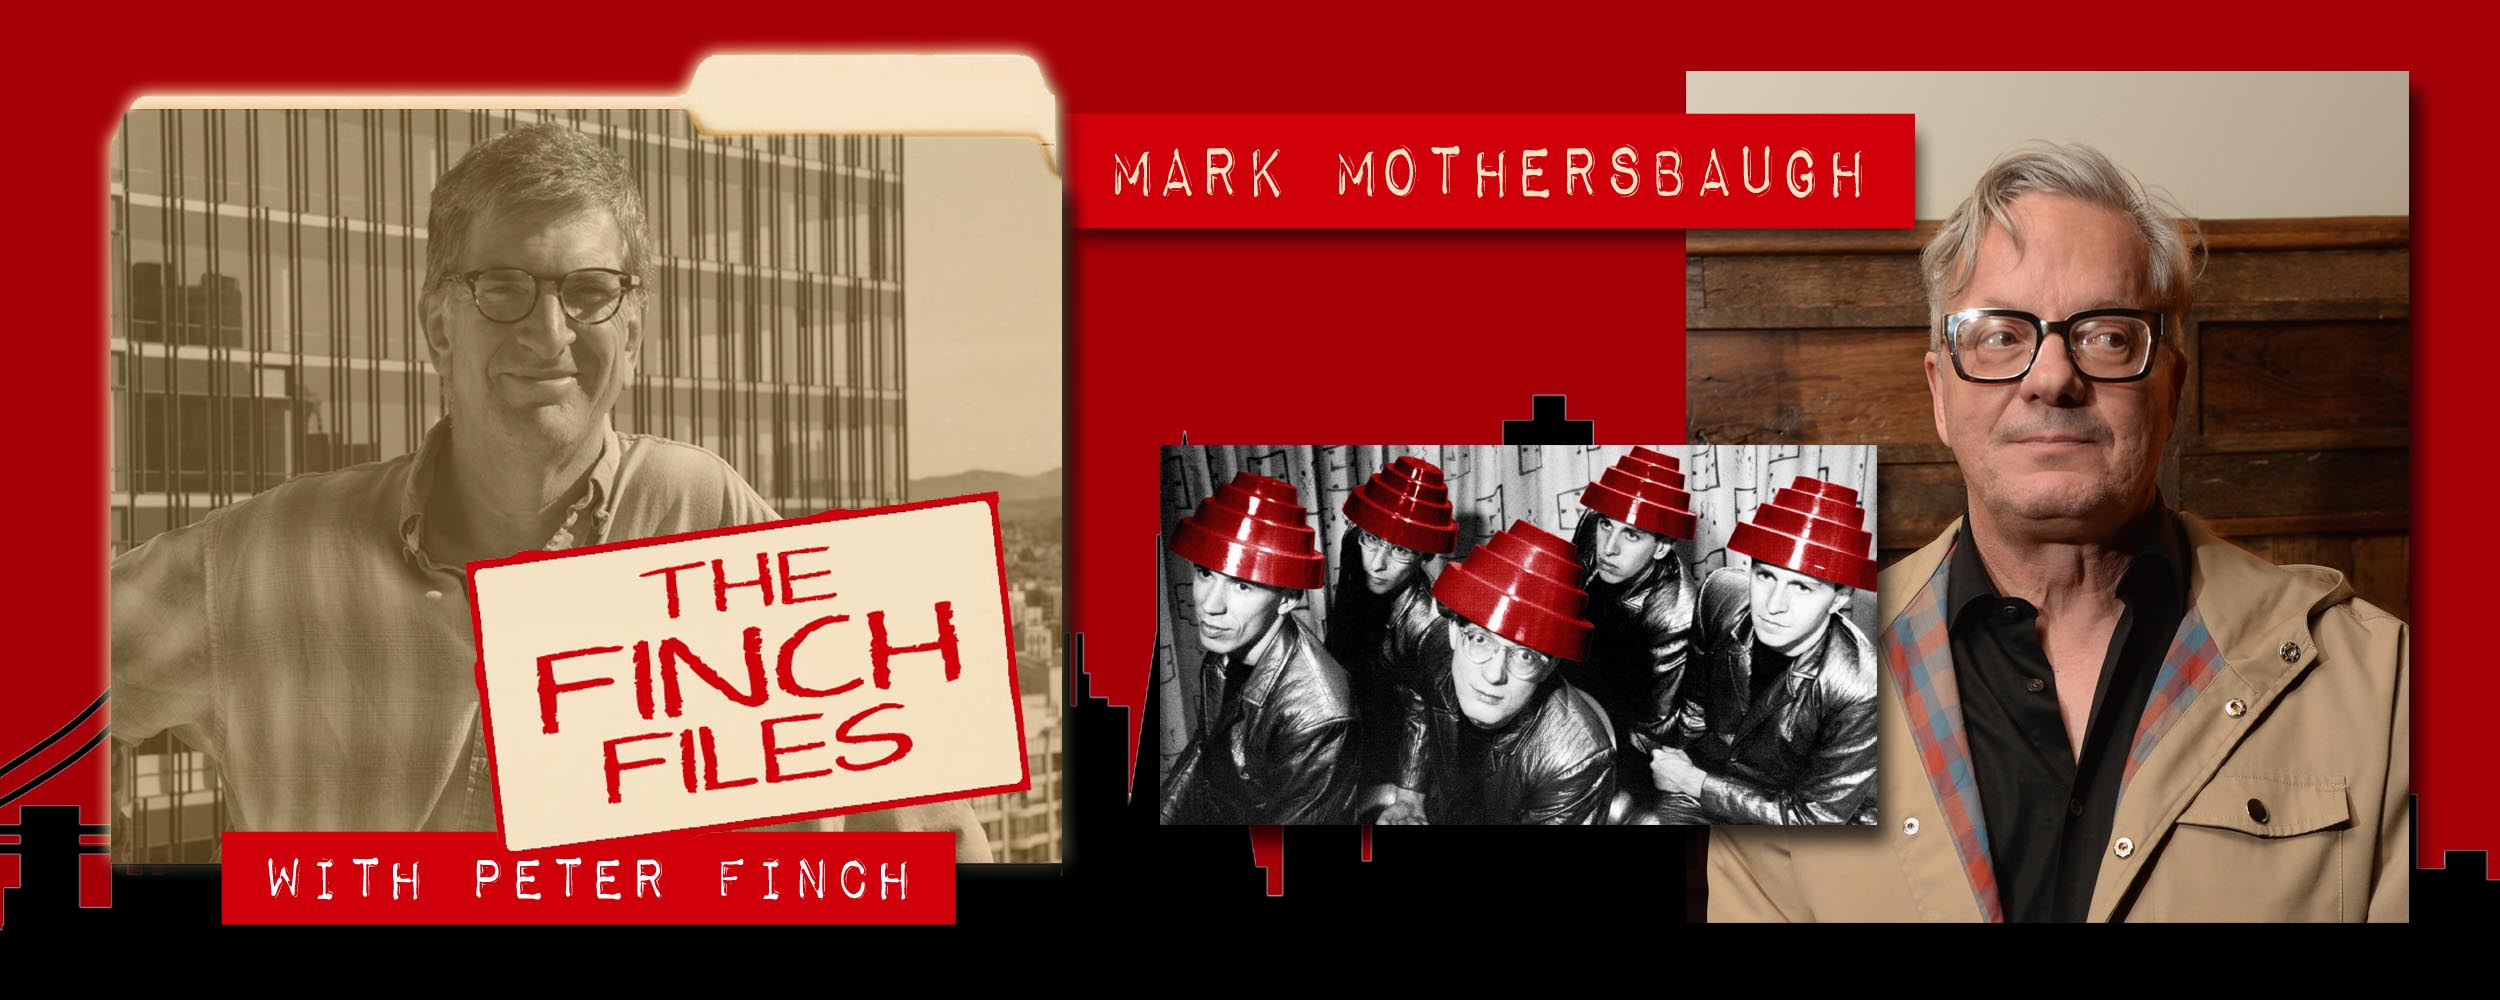 The Finch Files: Mark Mothersbaugh (Devo)